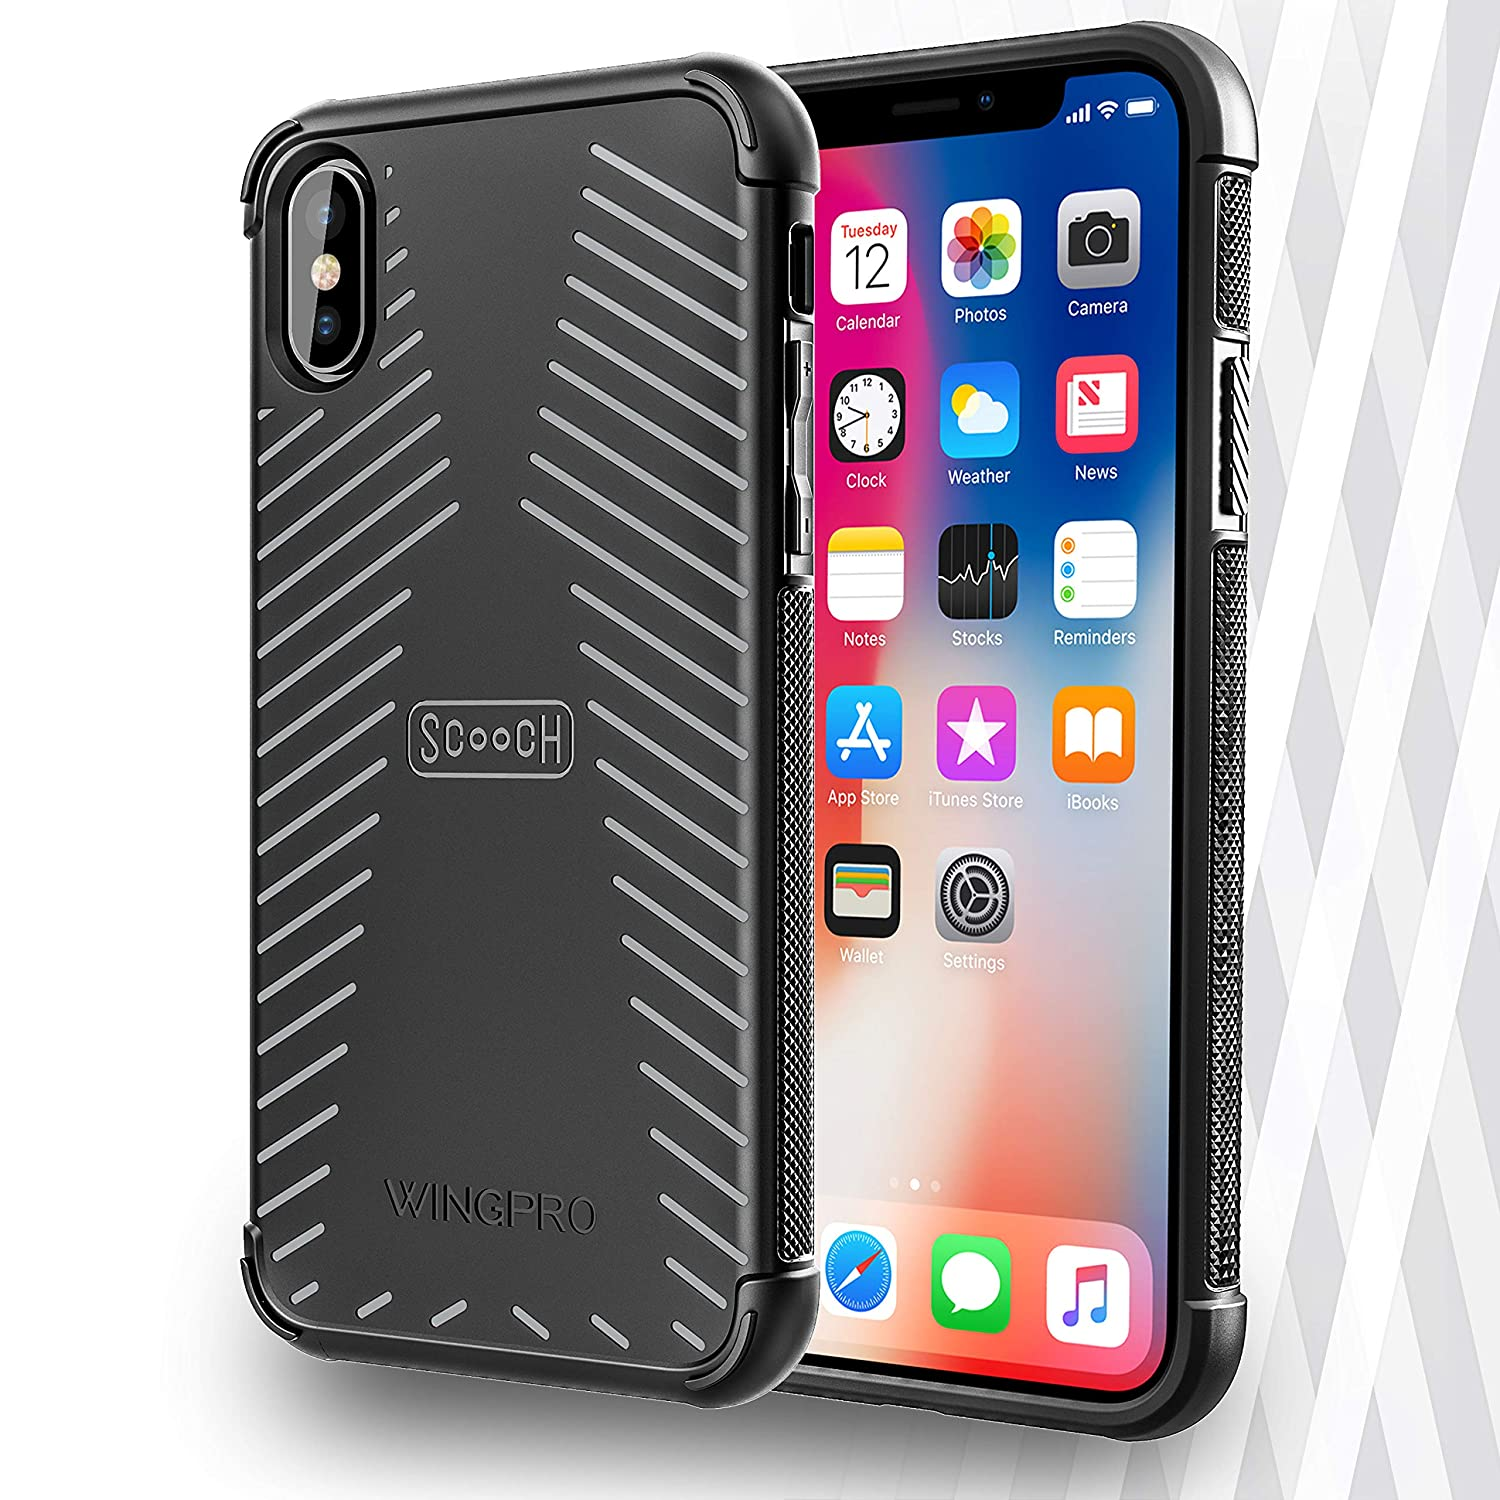 reputable site 6a5fb 317c1 Scooch Wingpro iPhone Xs Phone Case (Also fits iPhone X) (Stone)